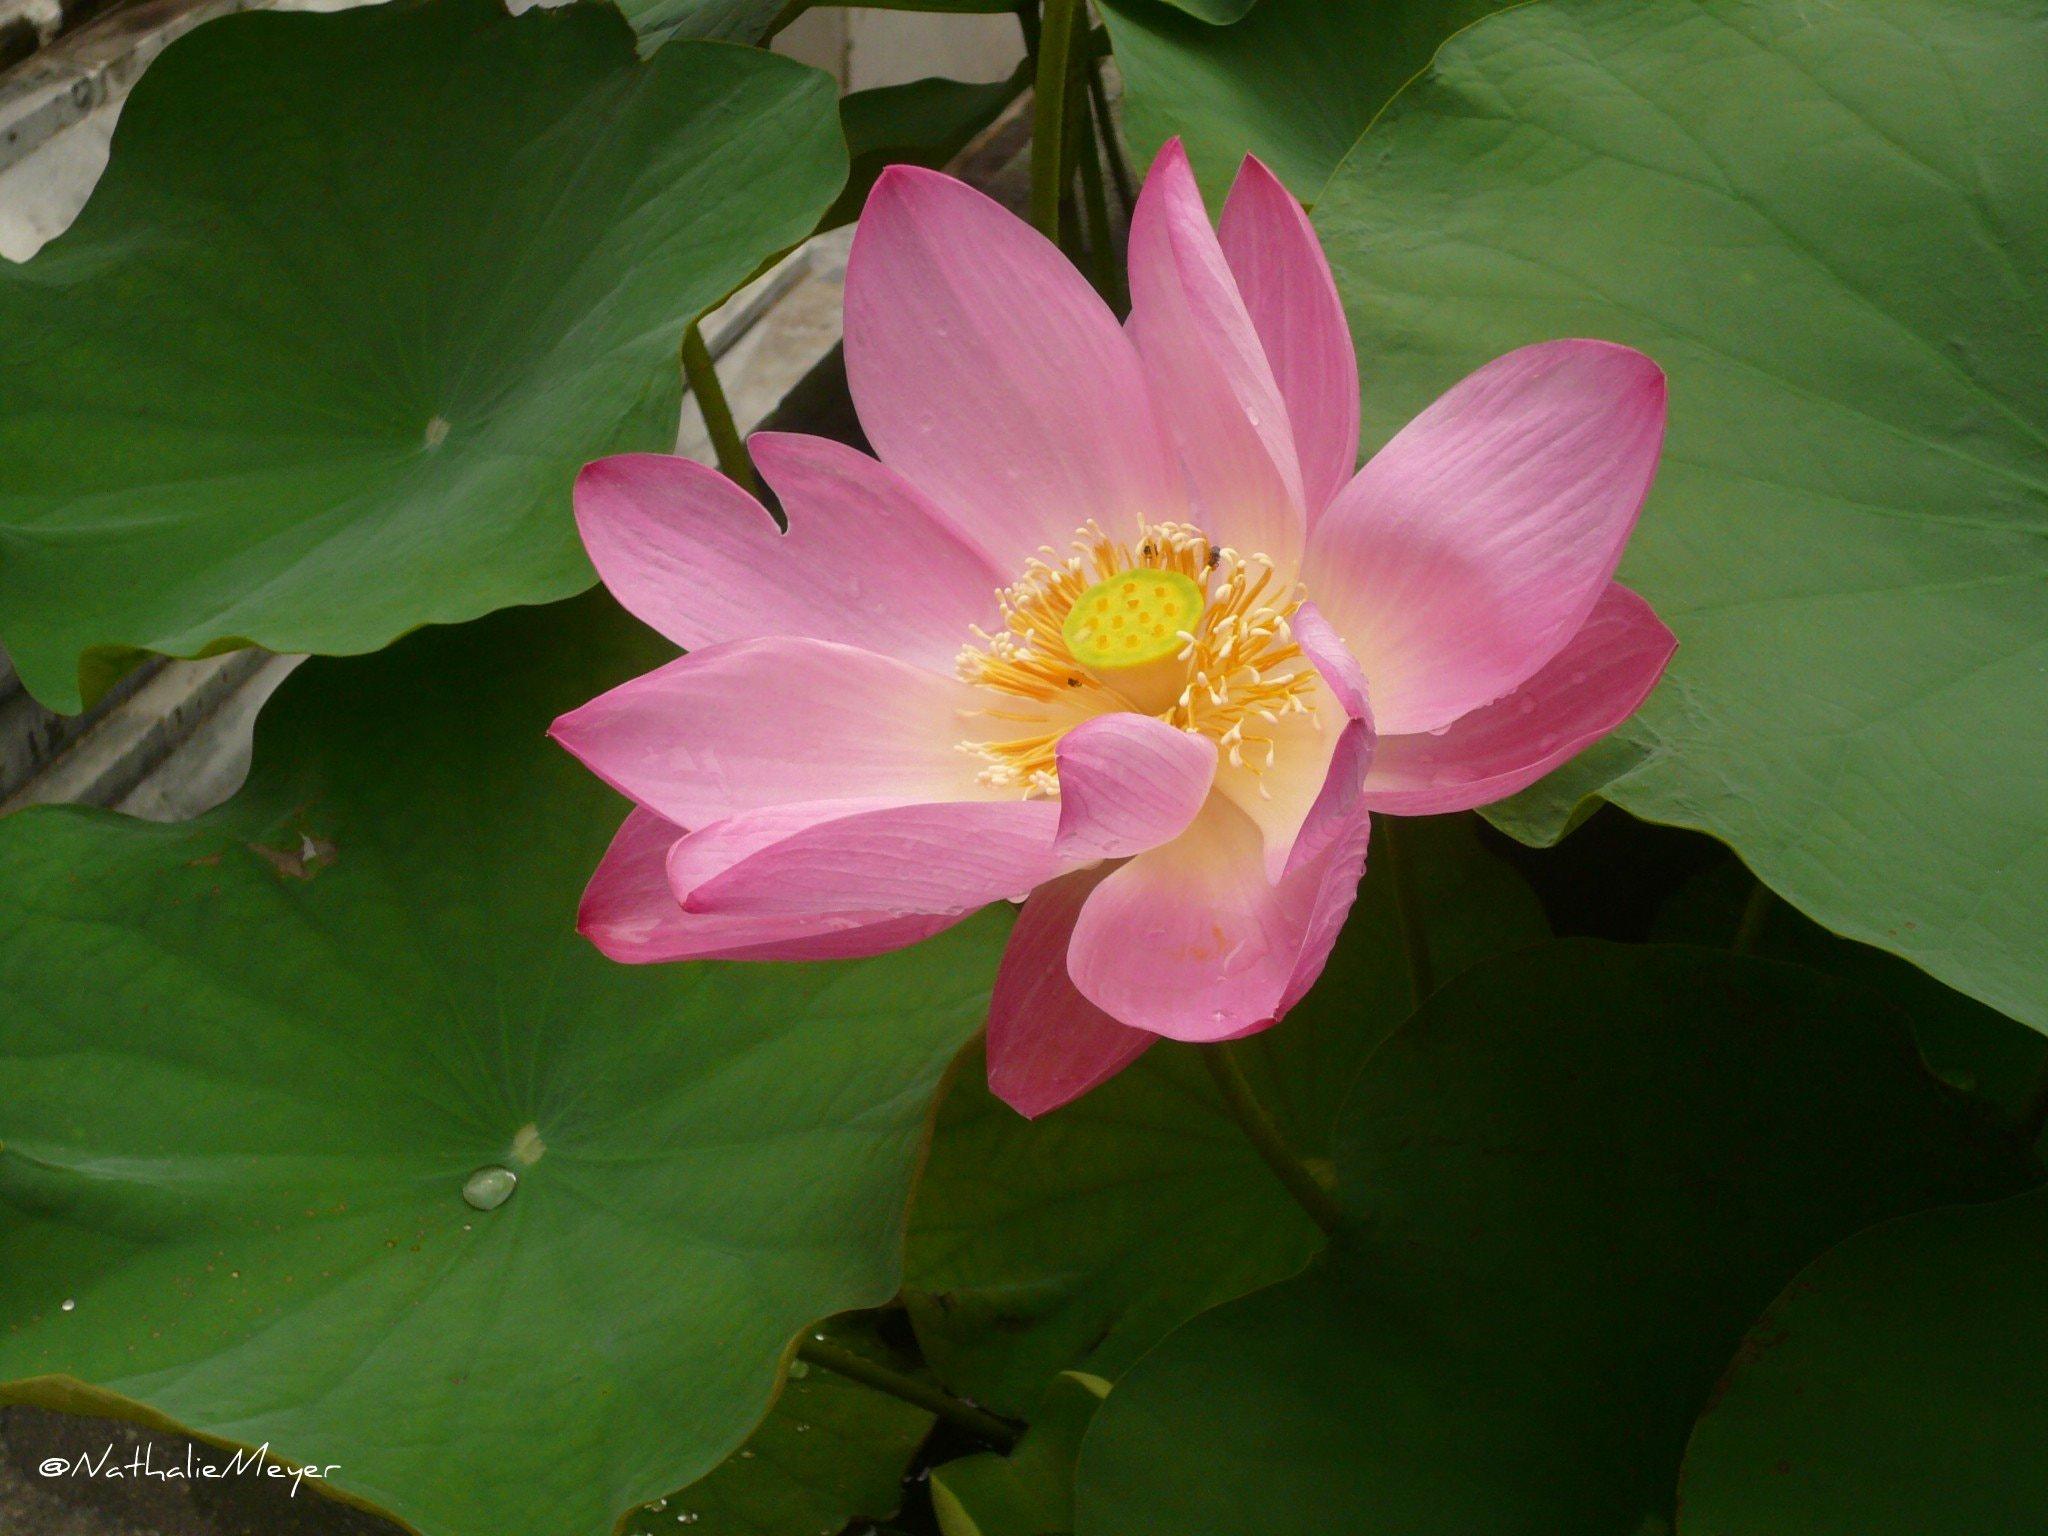 Photograph Fleur de Lotus by Nathalie Meyer on 500px